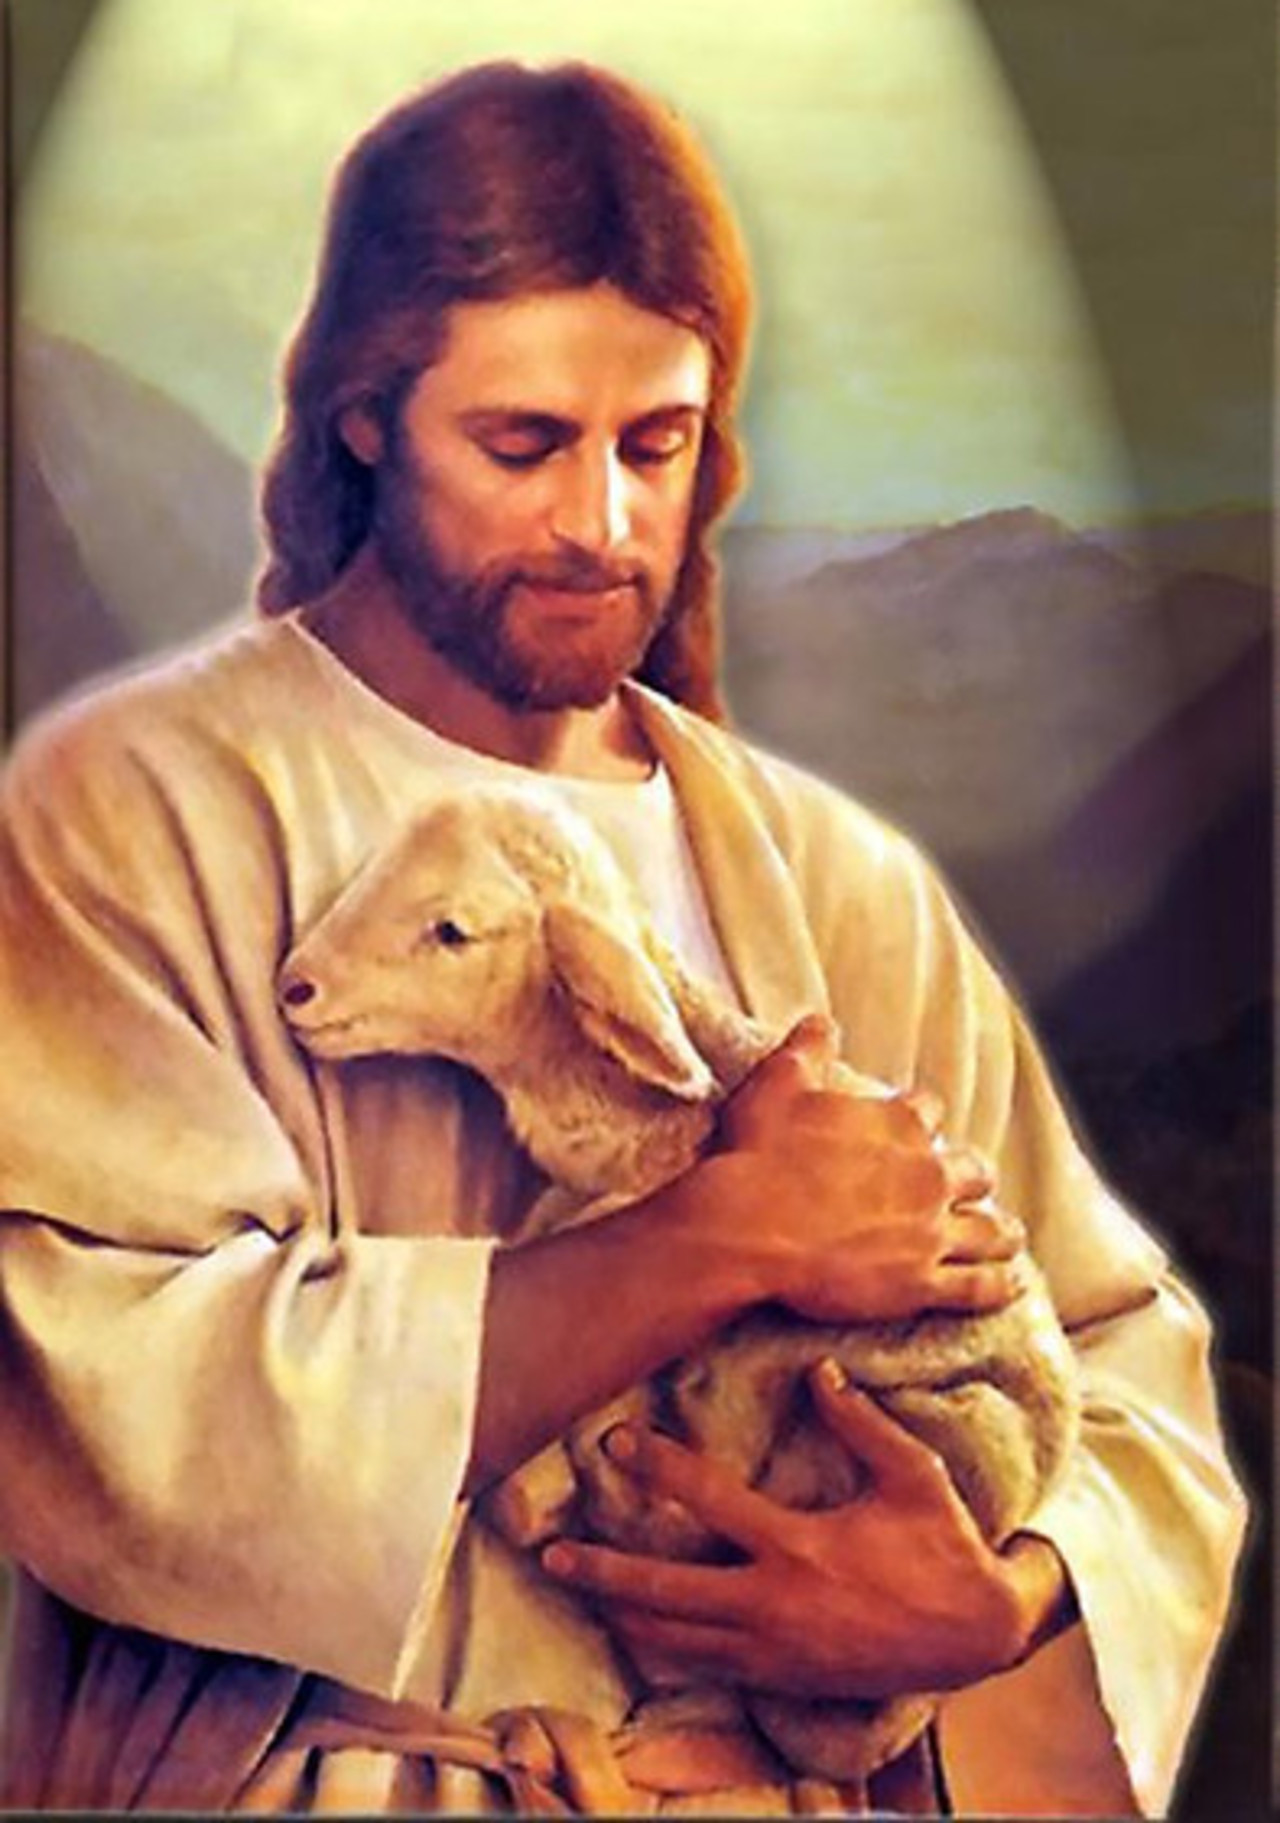 Jesus-and-the-Lamb-jesus-31753482-1280-1823.jpg